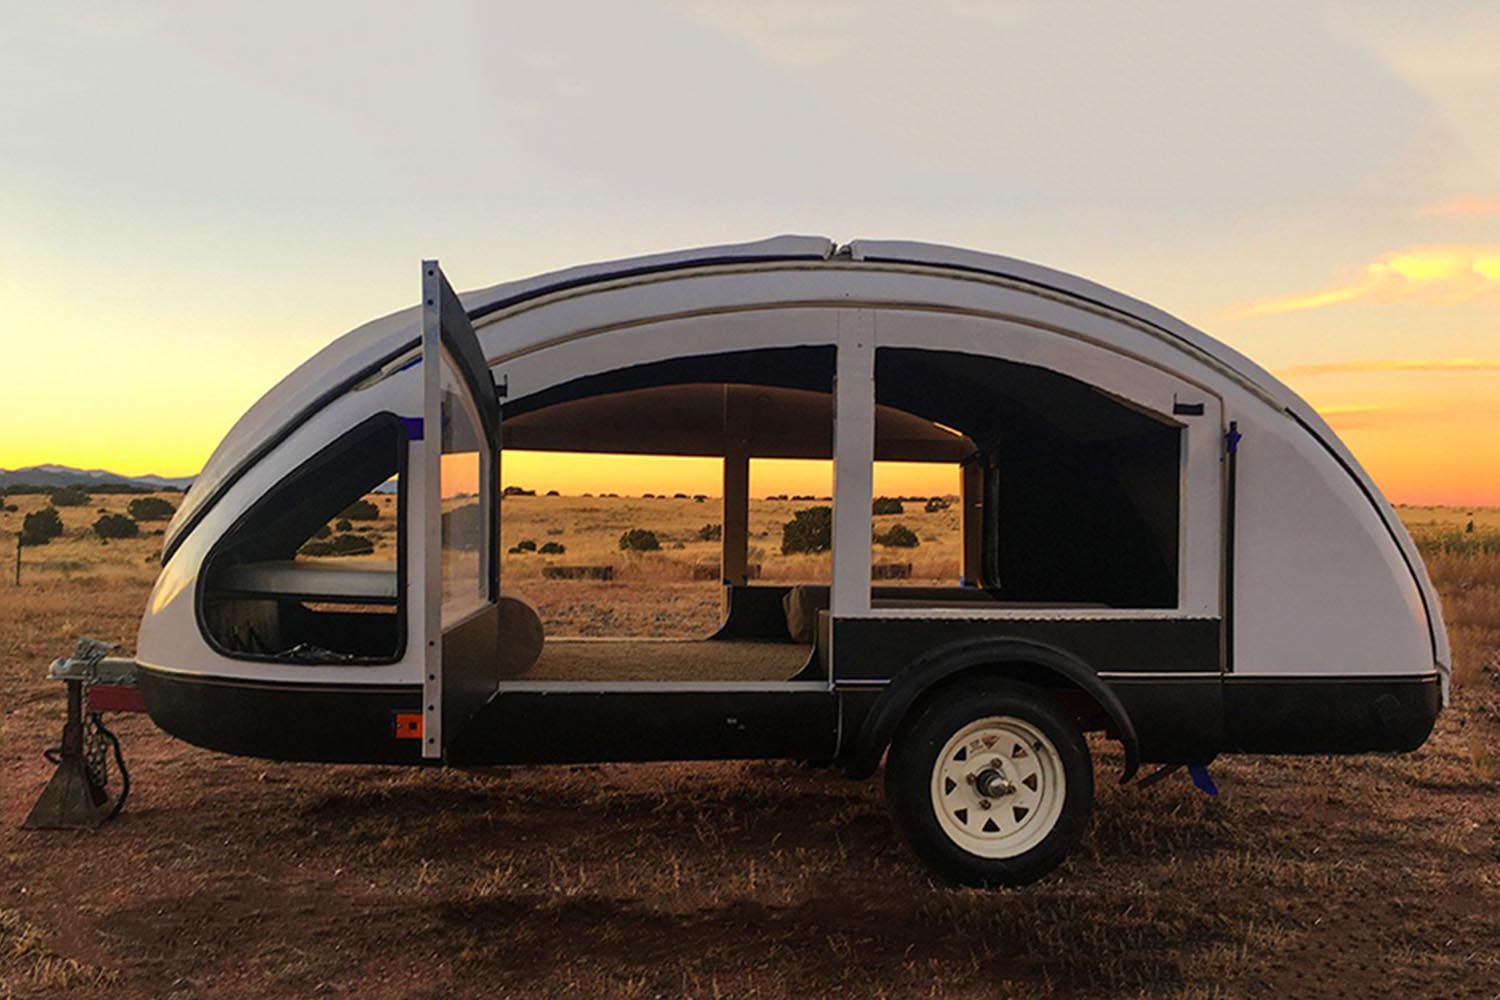 lightweight camping trailers are